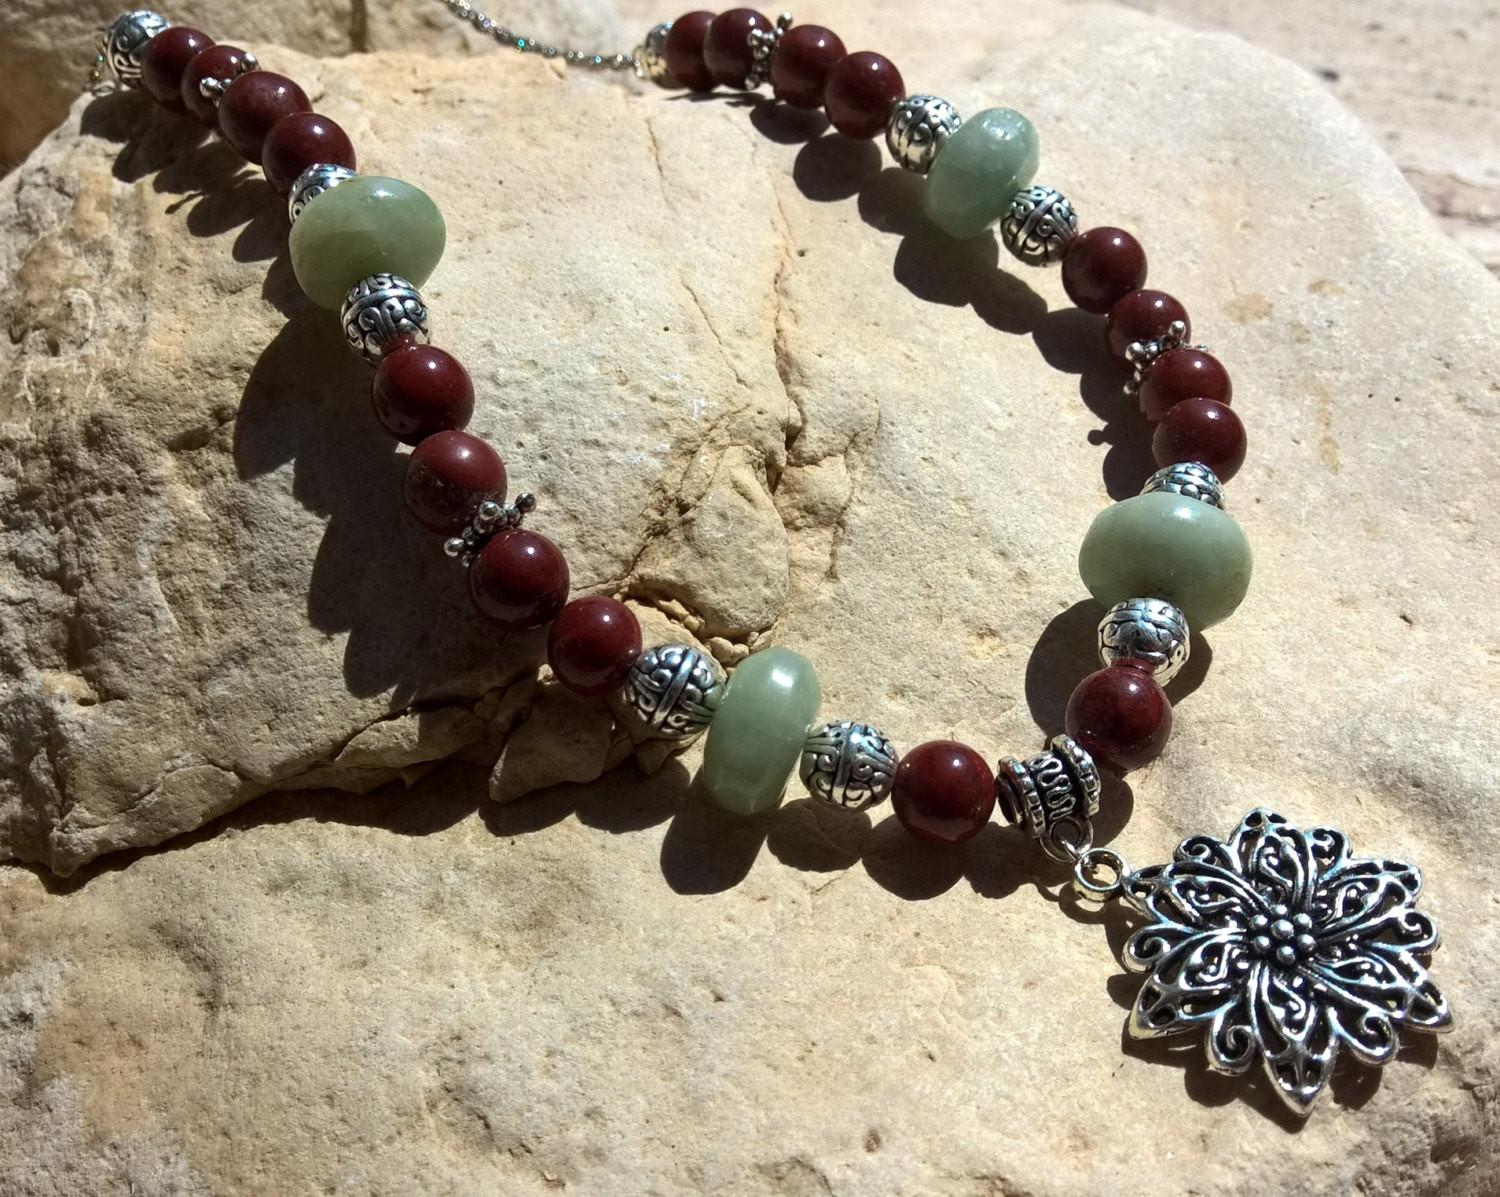 Mala stone necklace, Natural Aquamarine & red Jasper flower necklace, Stone necklace for women | Healing stone Handmade Jewelry by AnuanA Craft